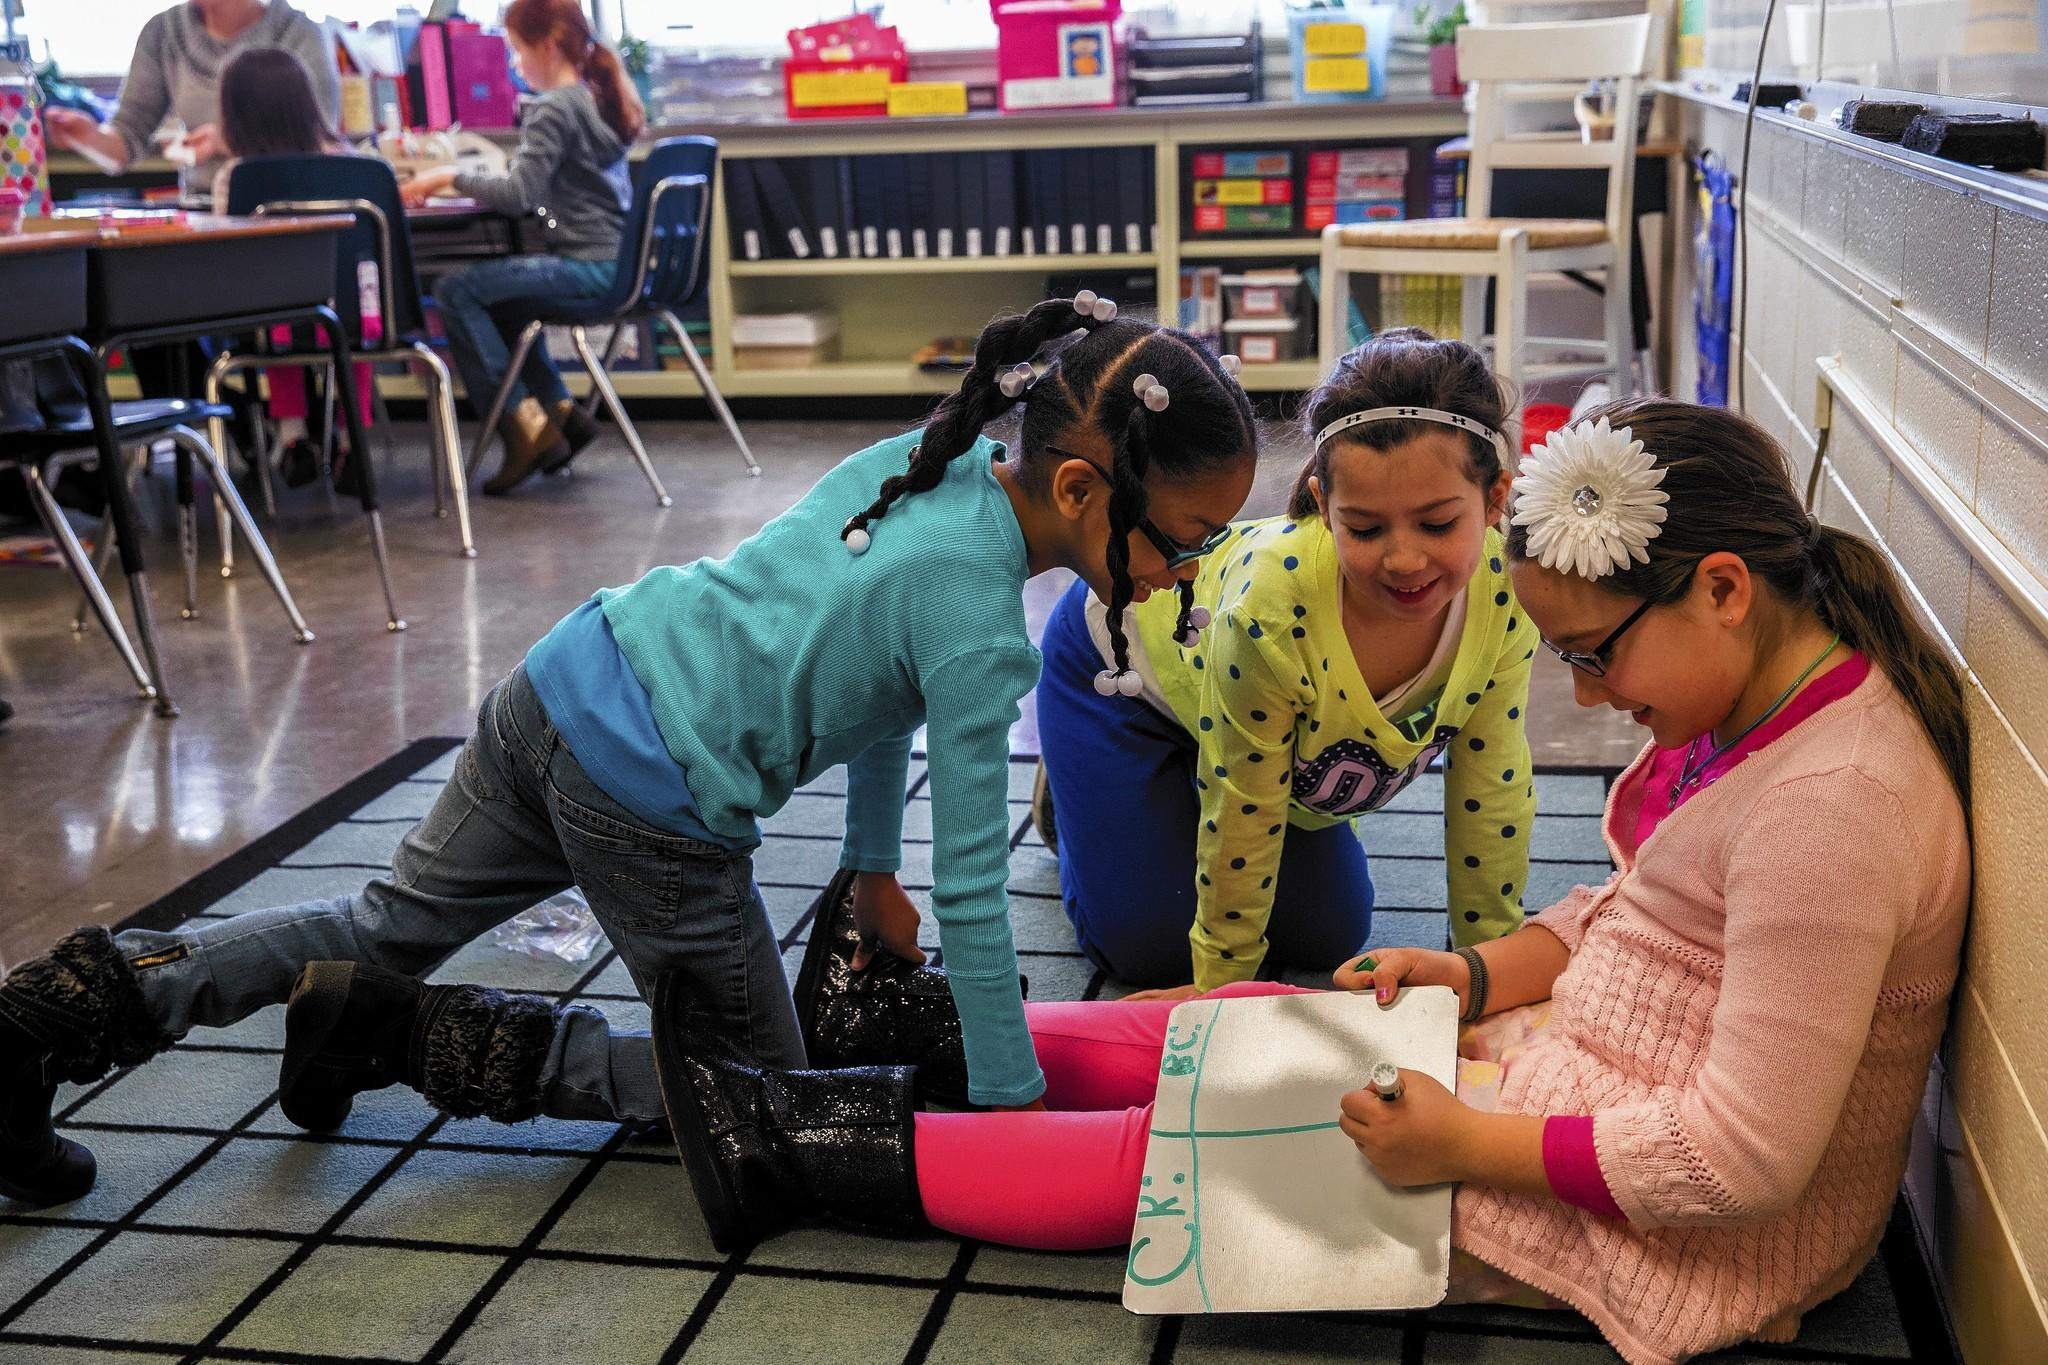 Third-graders Cashana King, from left, Brooklyn Carroll and Abigail McCune work during math class to prepare for a field test of a new state exam at Troy Shorewood Elementary School in Shorewood on Wednesday.